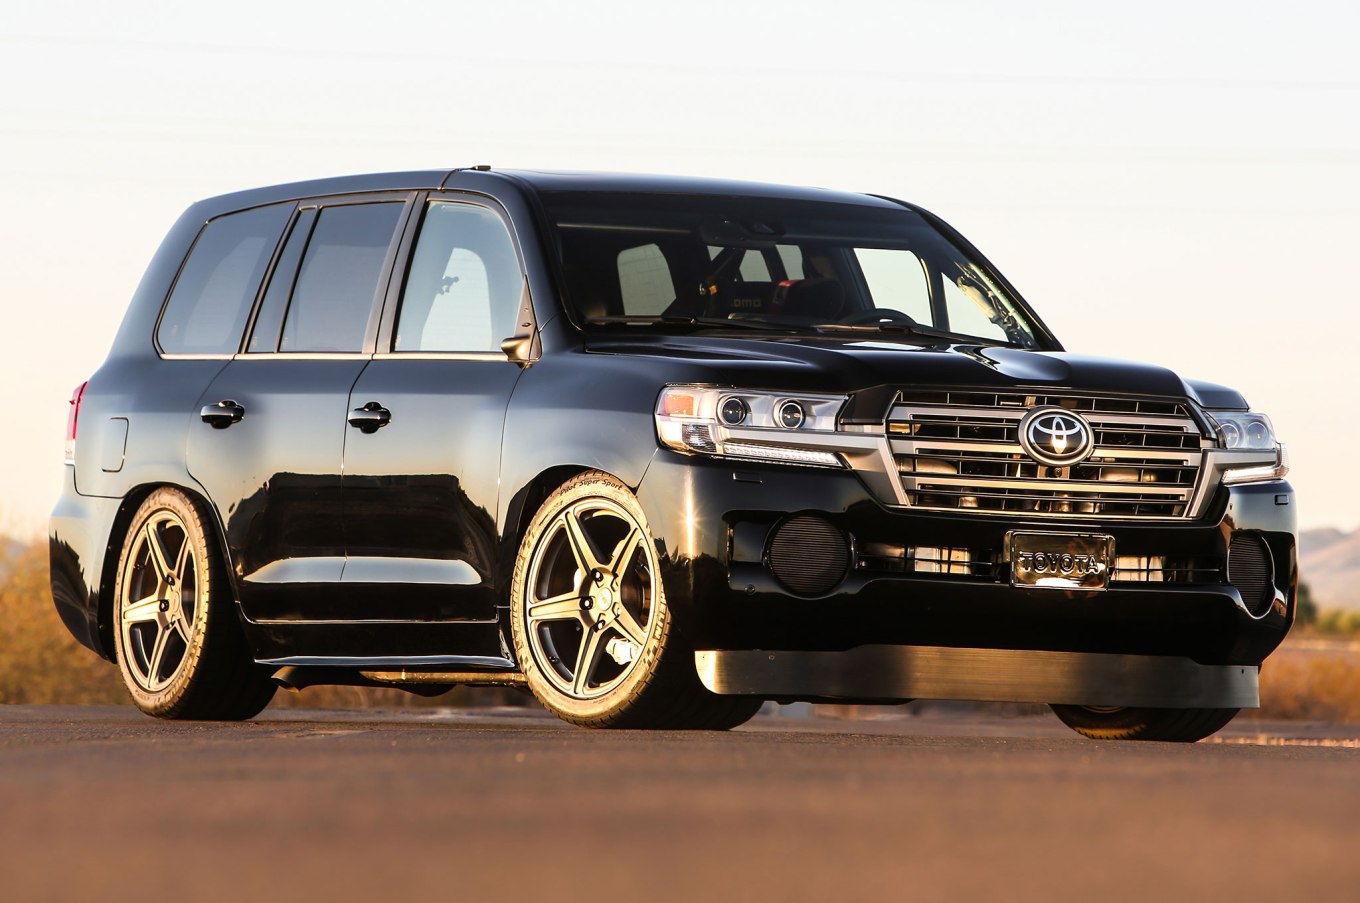 Just a tastefully modified Land Cruiser, right? (Credit: Motor Trend)